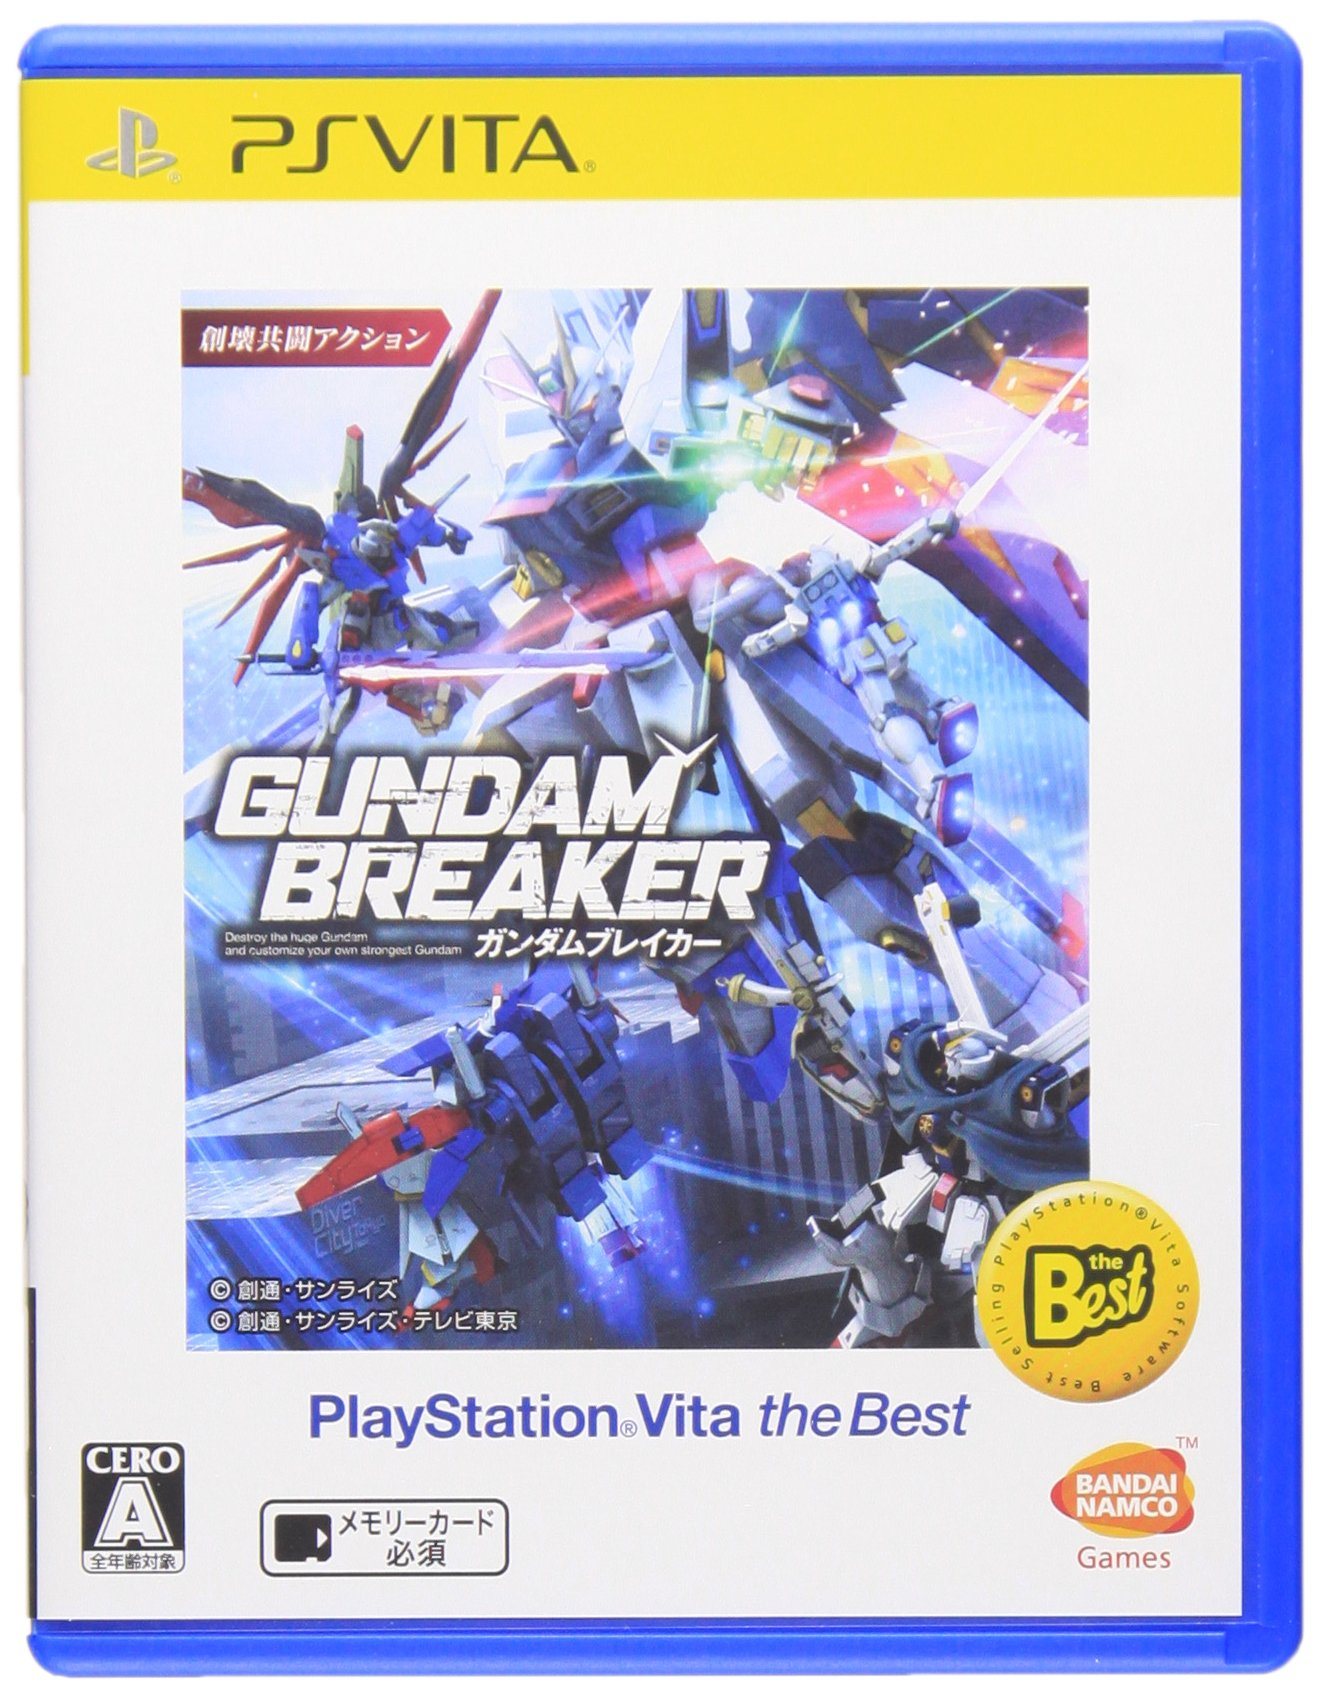 GUNDAM BREAKER (PLAYSTATIONVITA THE BEST) [ Import Japan]